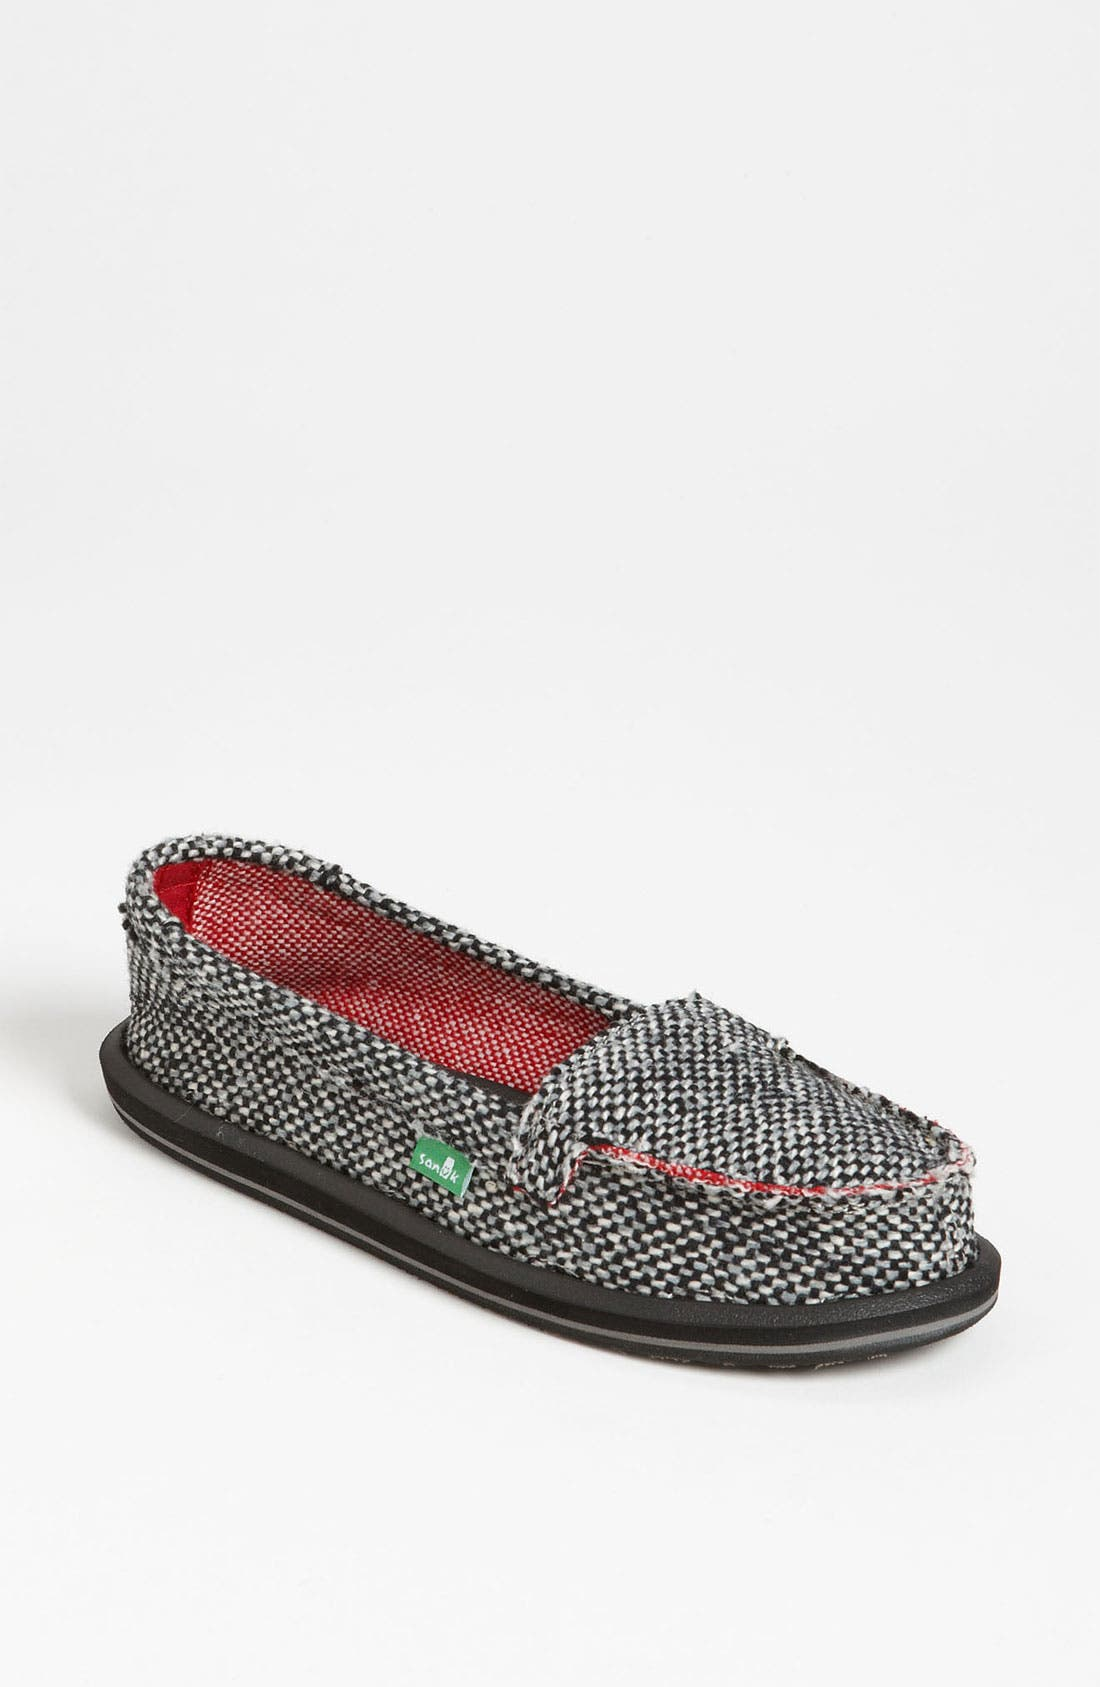 Main Image - Sanuk 'Tweedy II' Slip-On